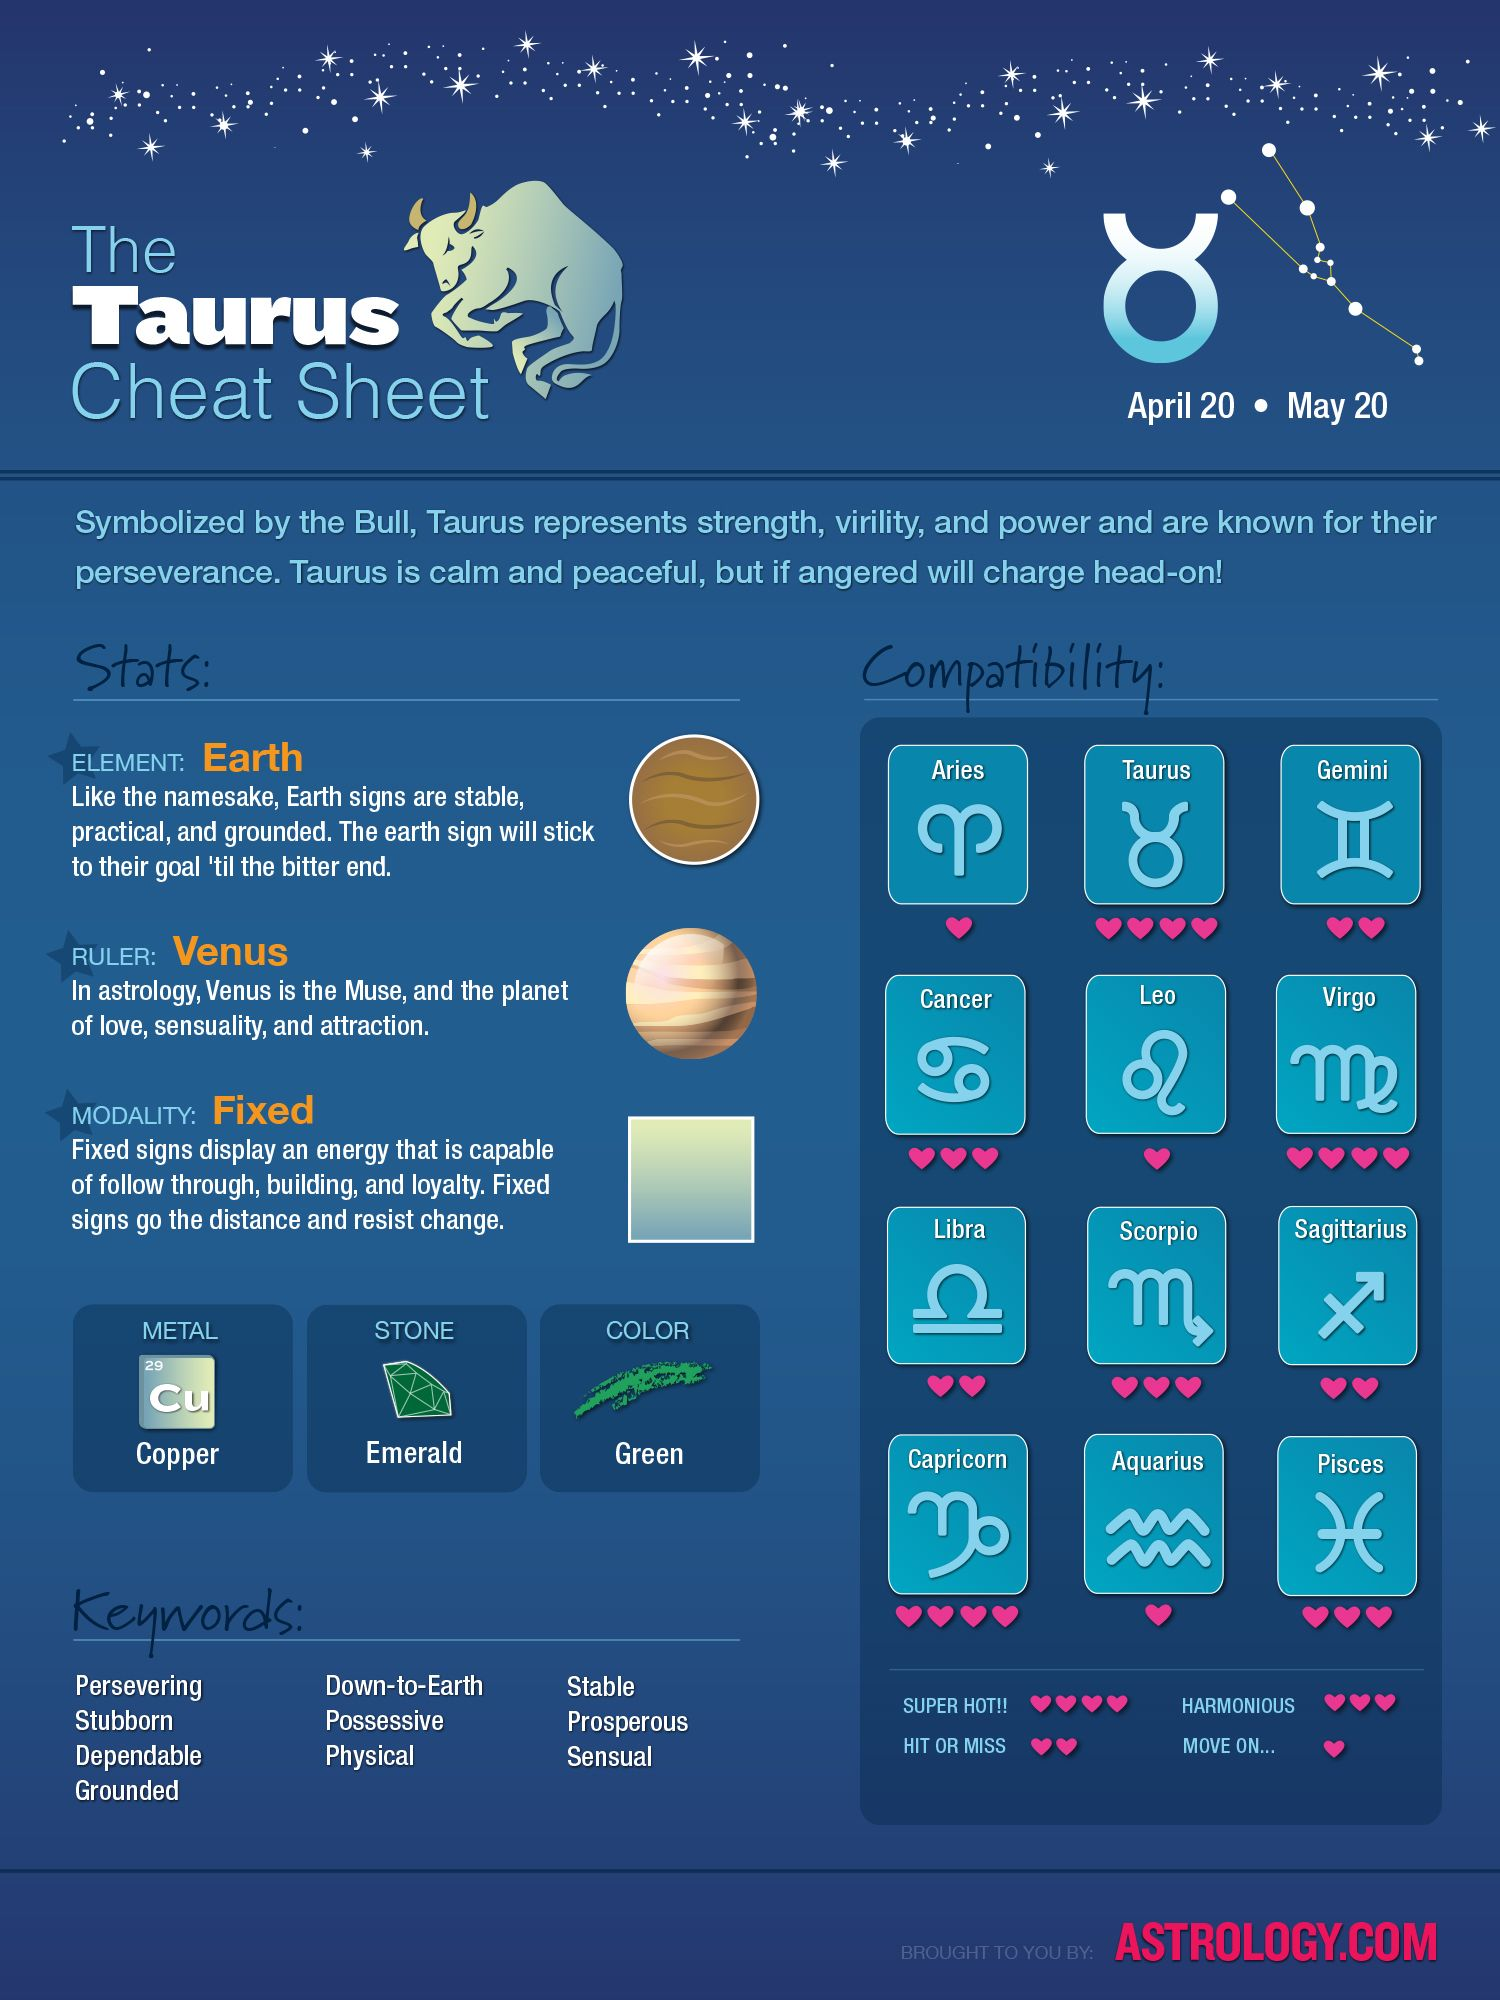 #Taurus Cheat Sheet Check out more at Astrology.com #astrology #horoscope